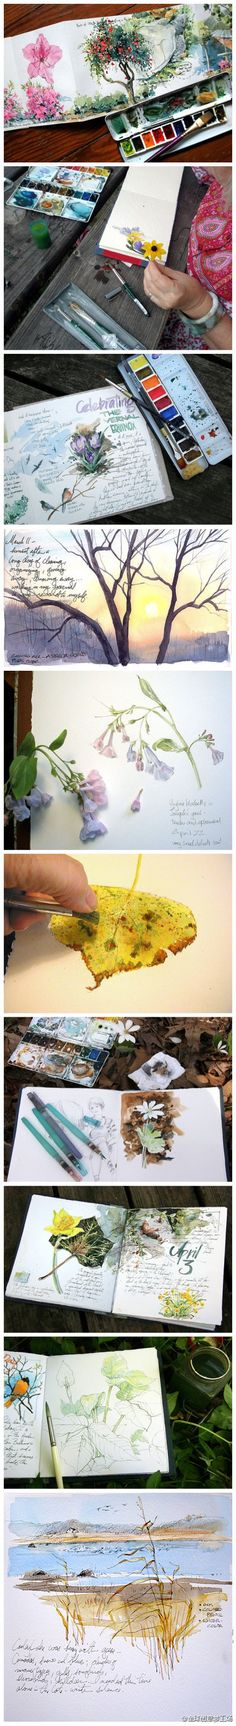 Watercolour painting... I so want to try this.